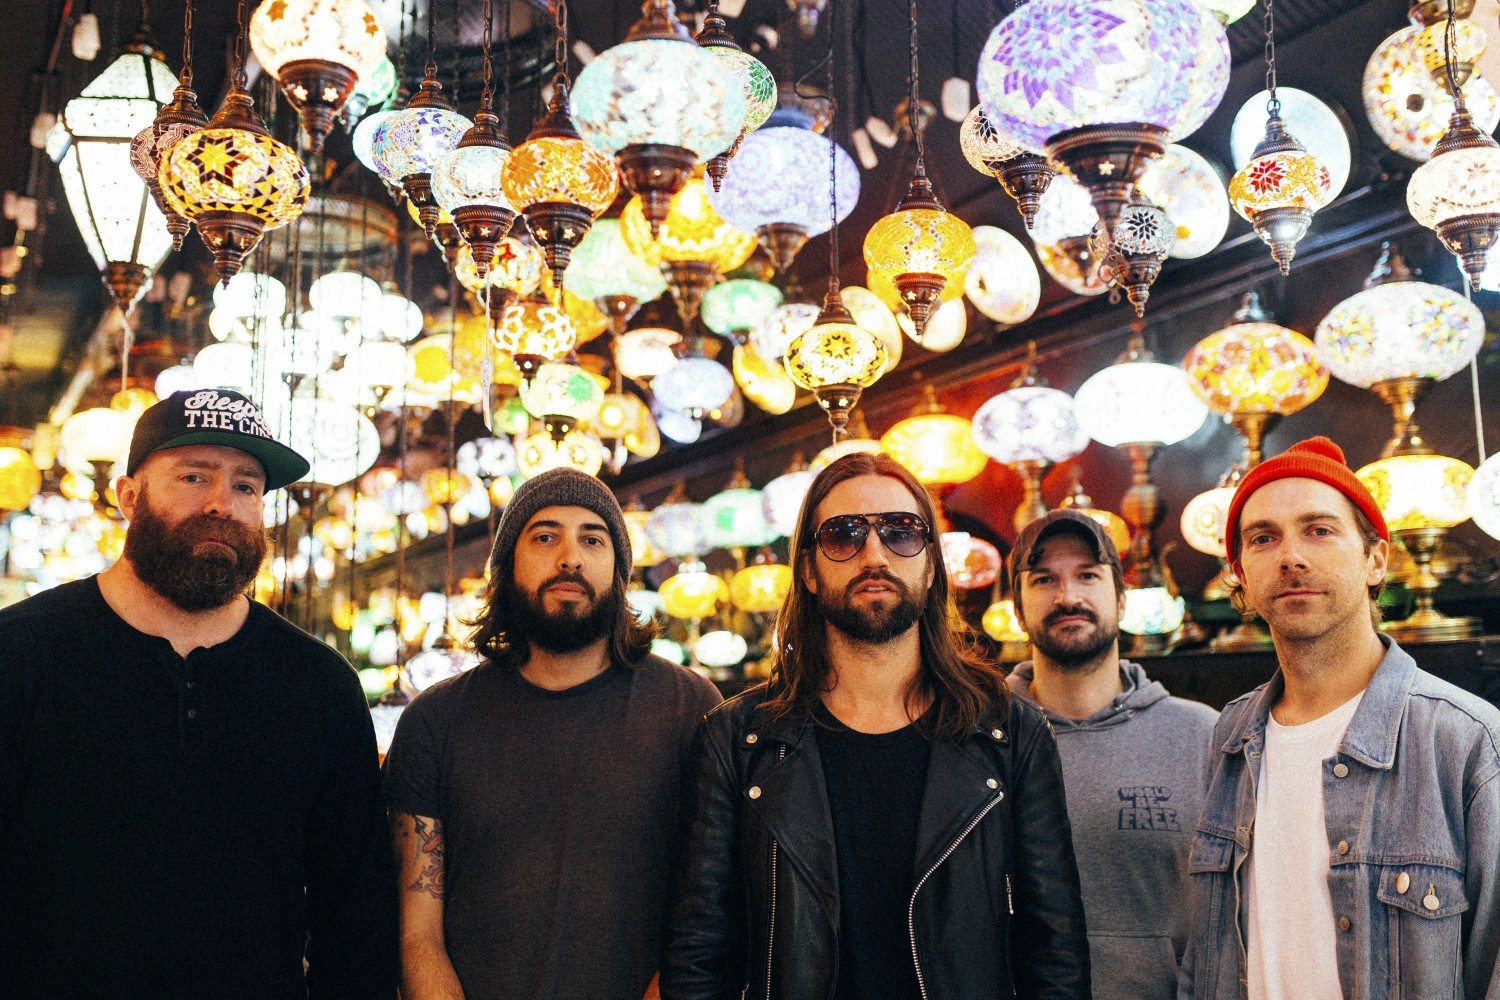 No Halloween Plans Yet? Q&A with 2 Great Bands: The Interrupters & Every Time I Die